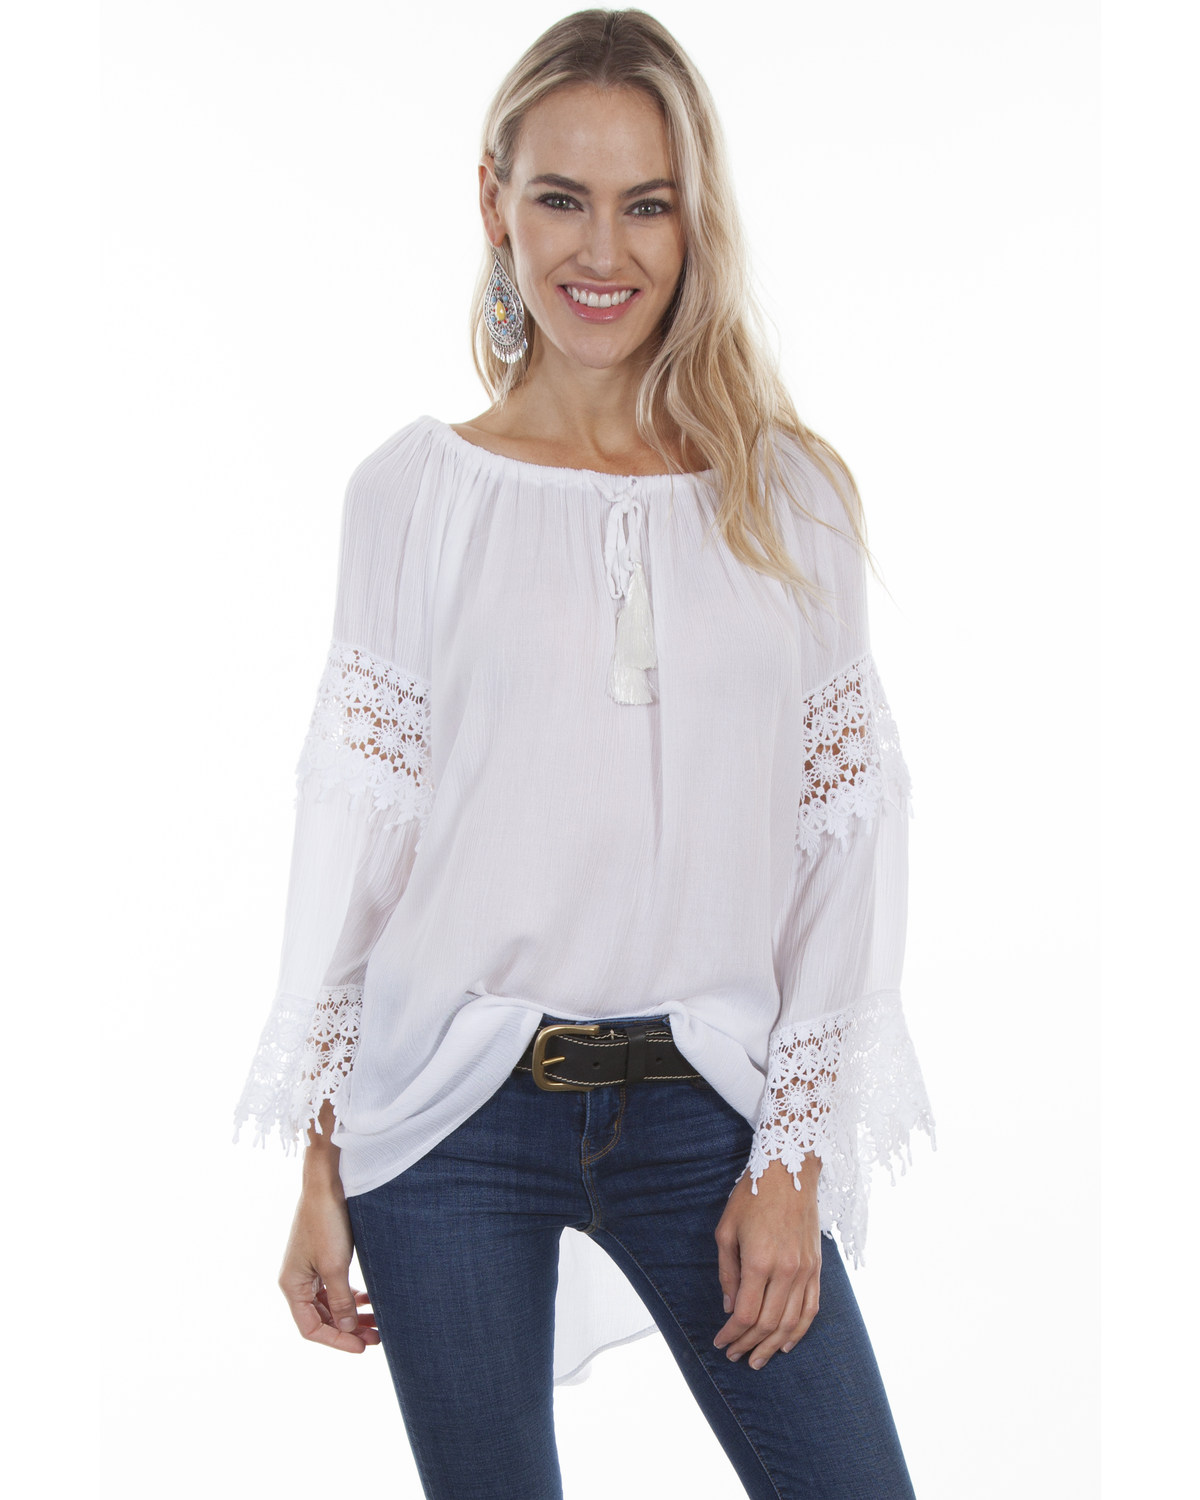 a97e7cfe Zoomed Image Honey Creek by Scully Women's Crochet Lace Long Sleeve Blouse,  White, hi-res